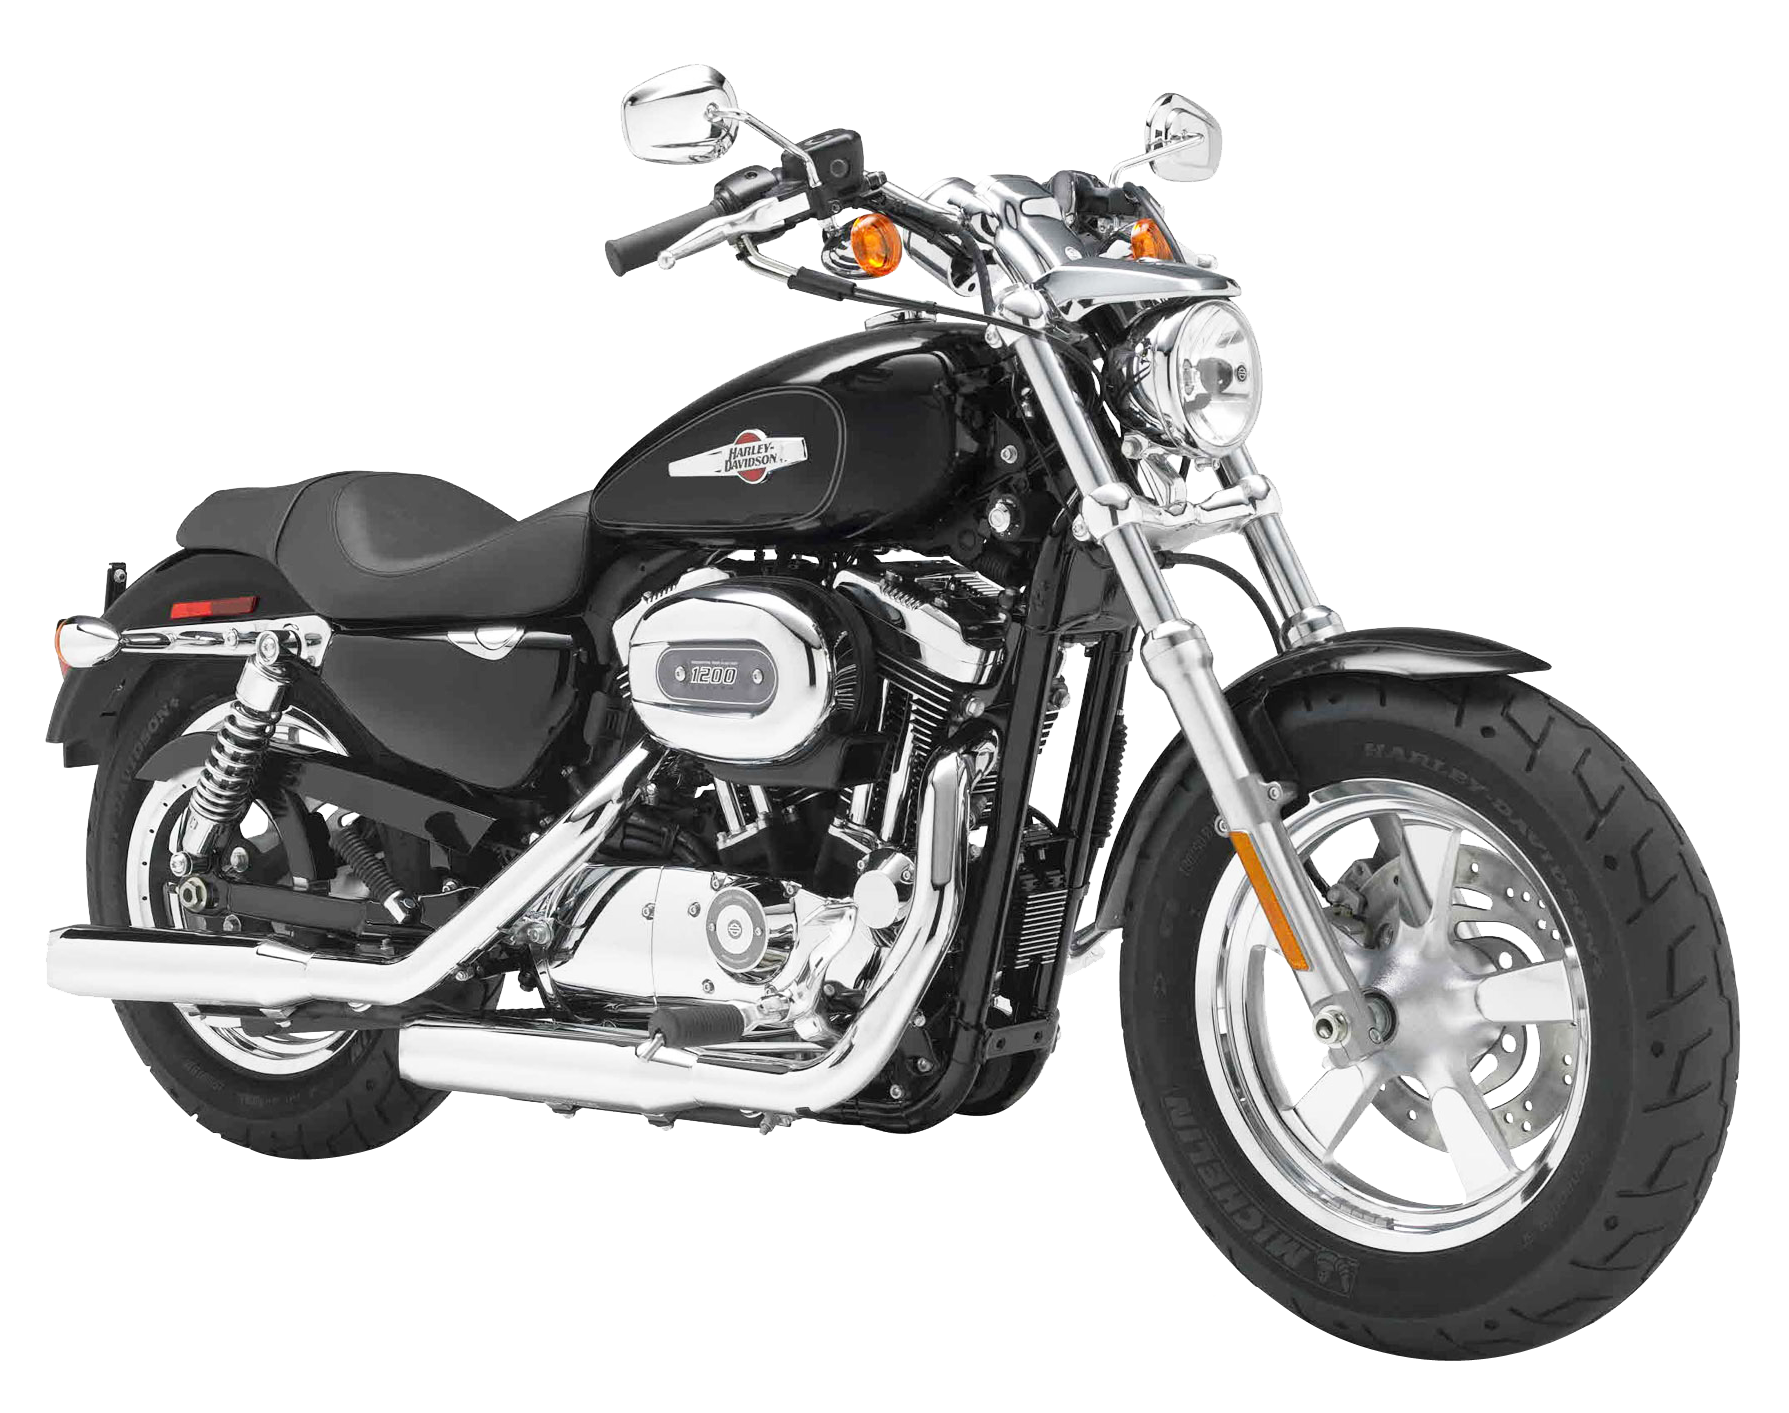 Motorcycle clipart toy motorcycle. Harley davidson png image